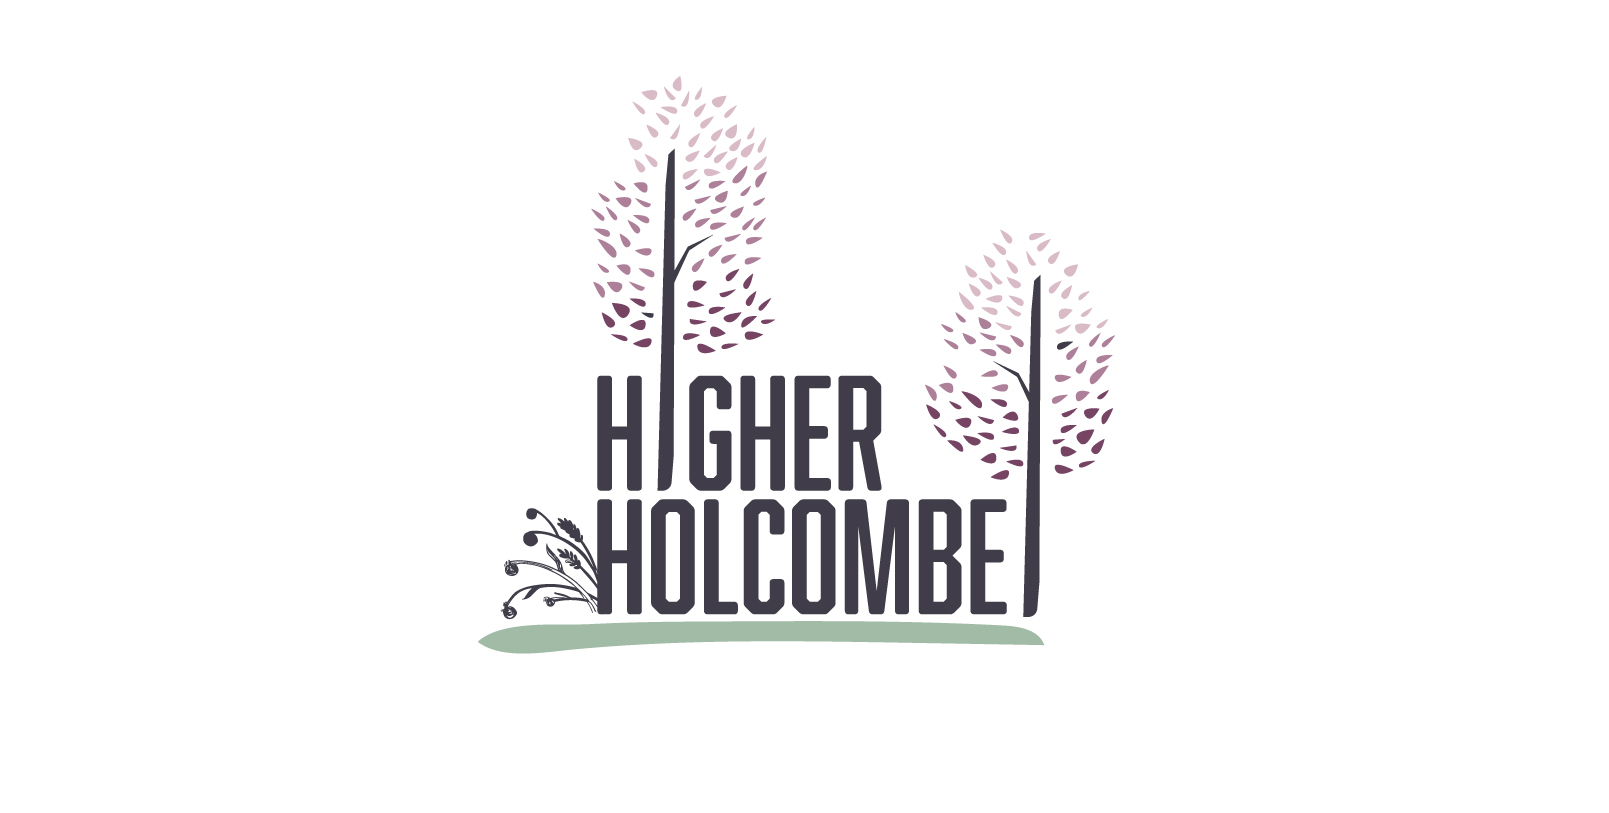 Higher Holcombe logo variations